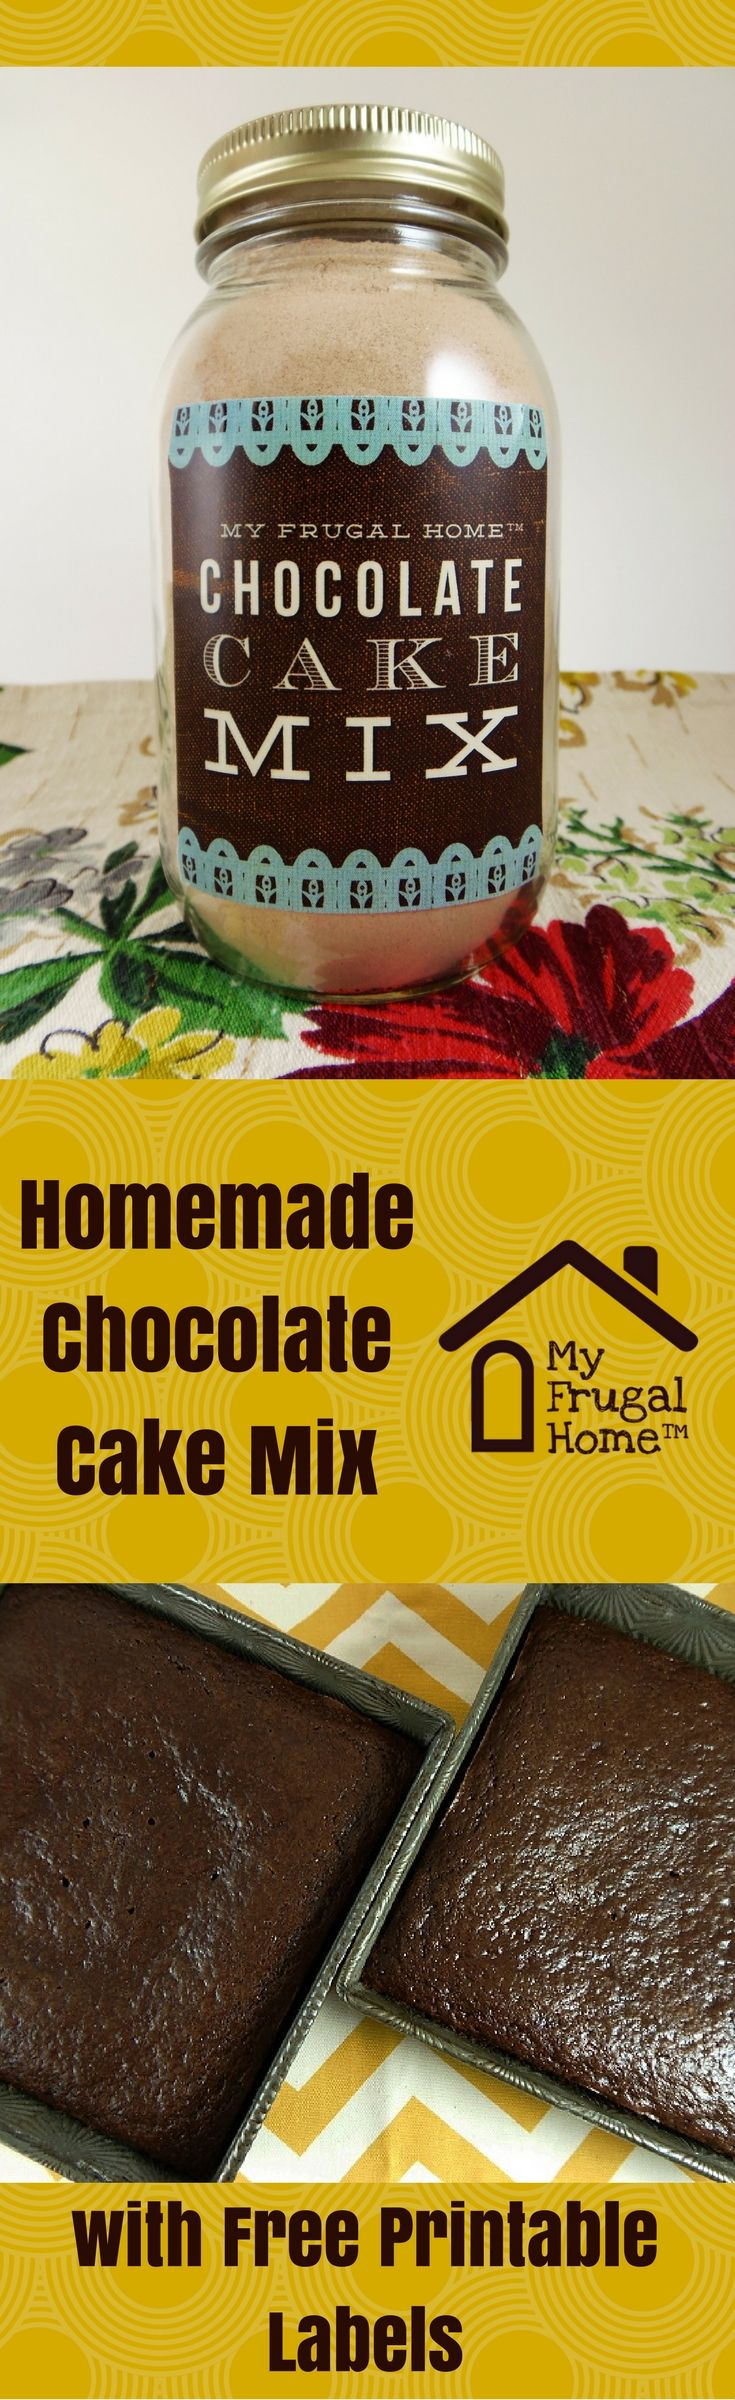 Homemade Chocolate Cake Mix Recipe - with free, printable labels